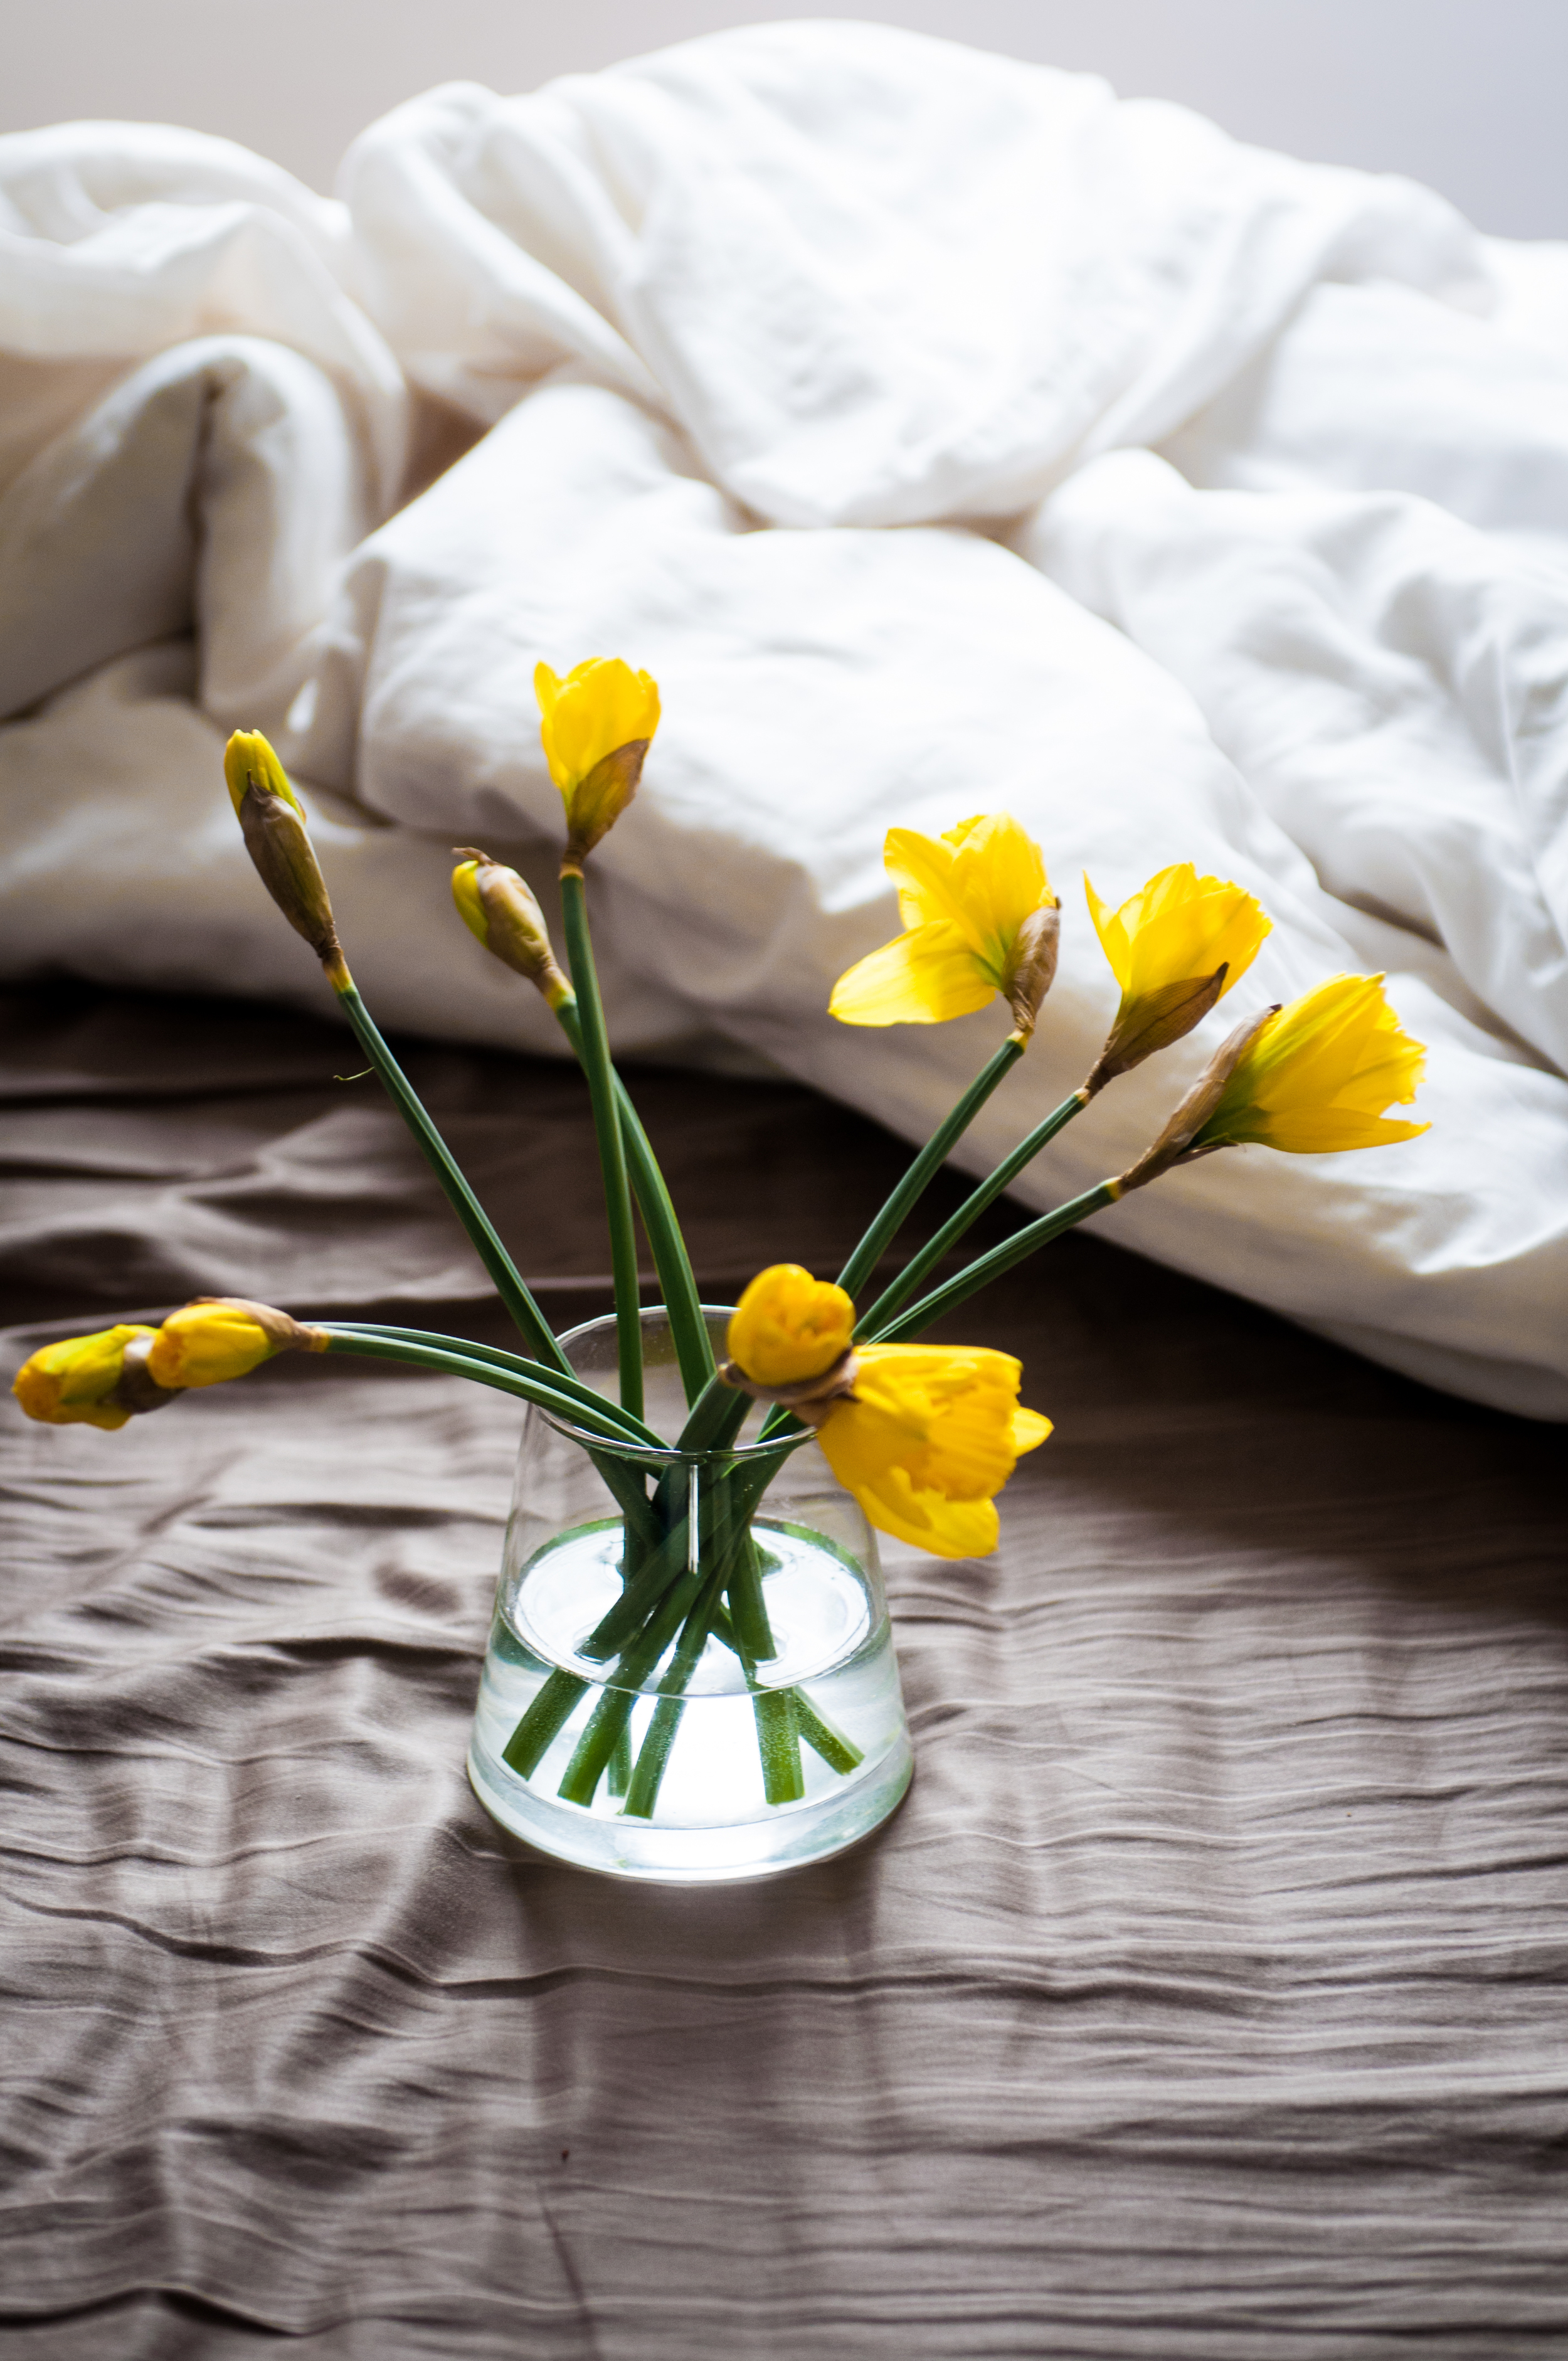 Waking up to these glorious yellows is one of the simplest pleasures of my recent days. They brighten upthe room so!